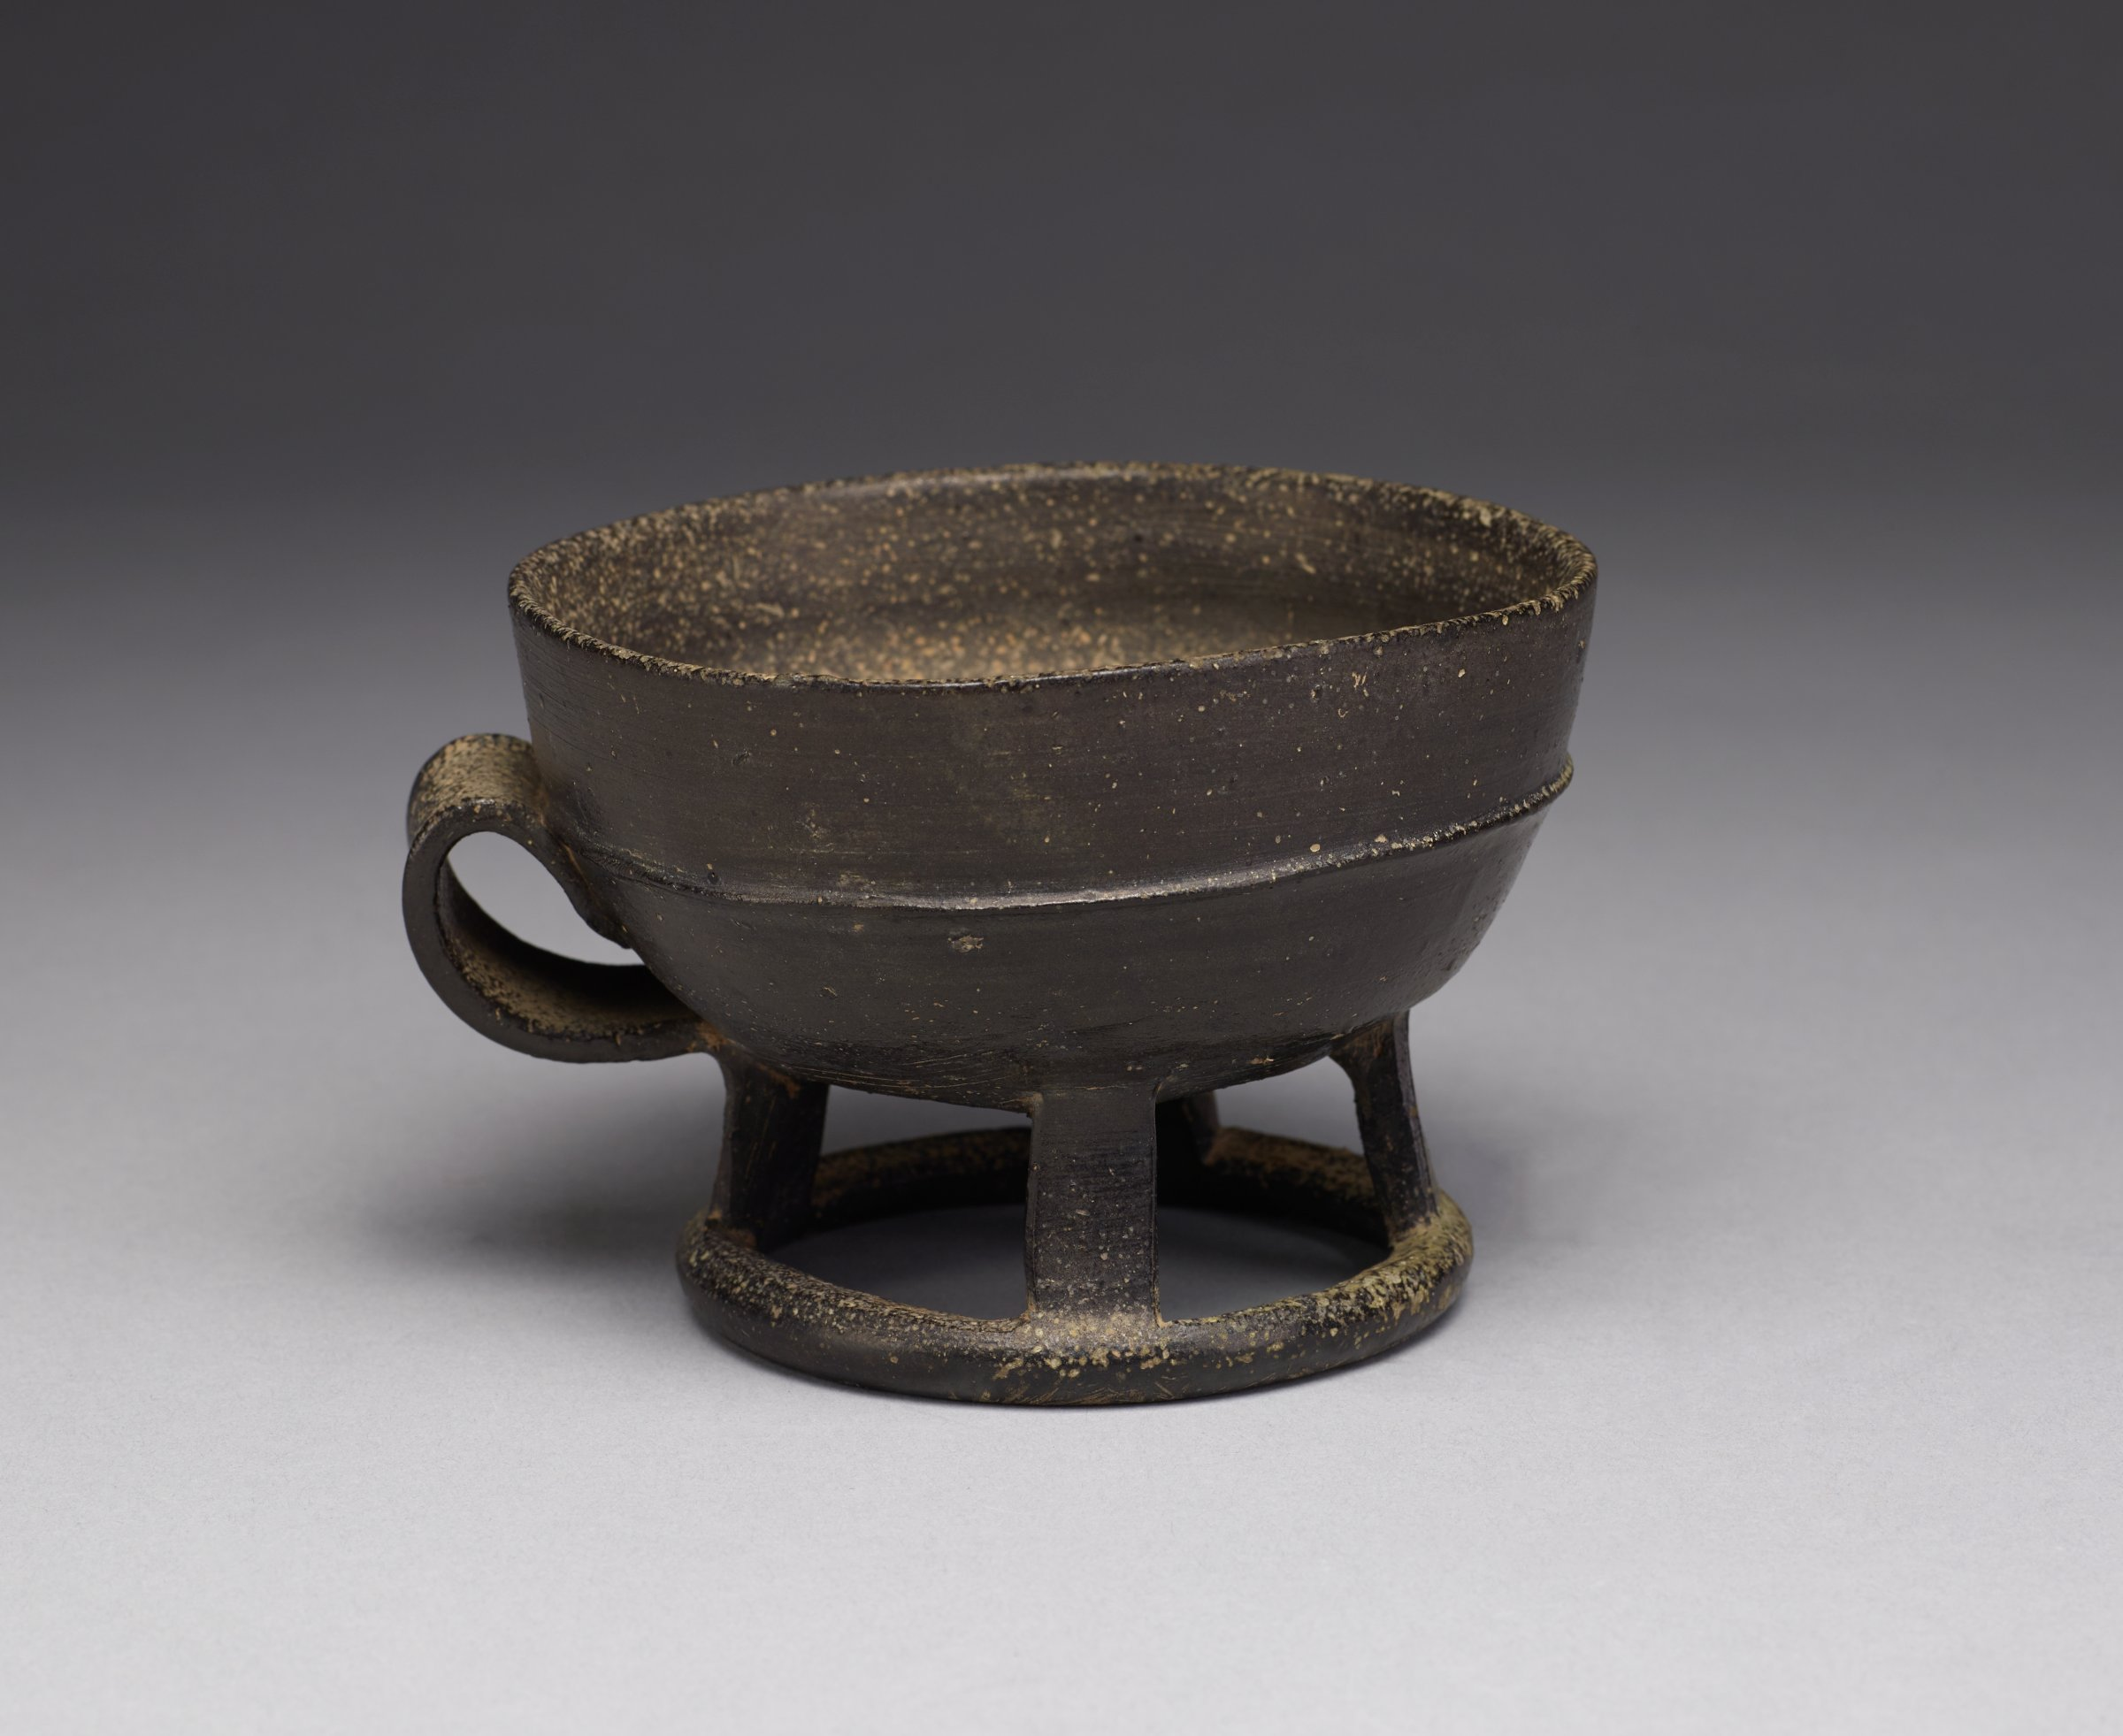 Cup is footed with a handle. Outer part of cup and inner rim covered with deep, lustrous black glaze thinly coated and pitted.Thinkly potted no visible repairs.